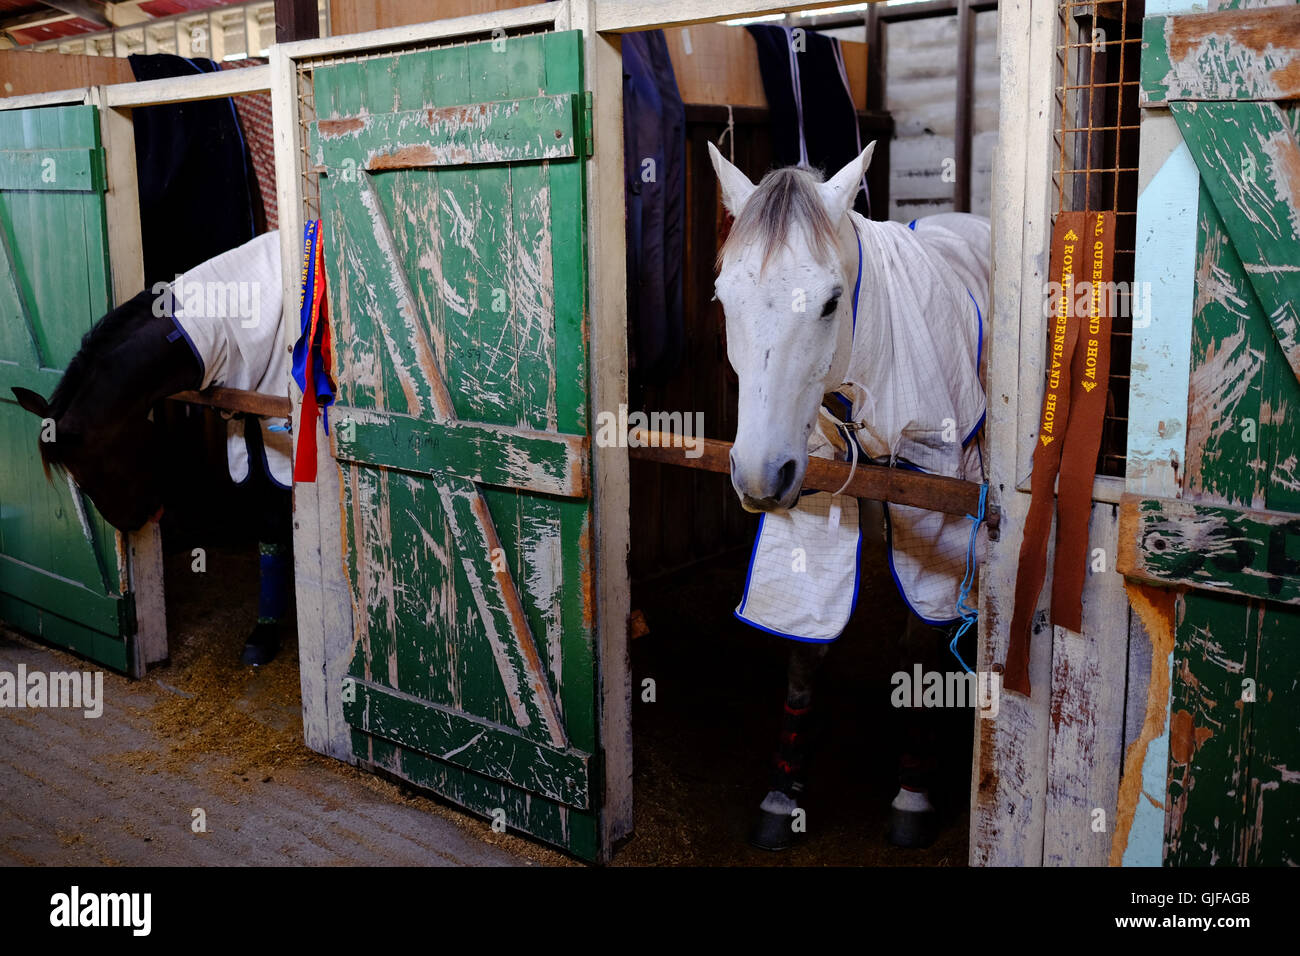 White and brown horses in a stable with a green door Stock Photo